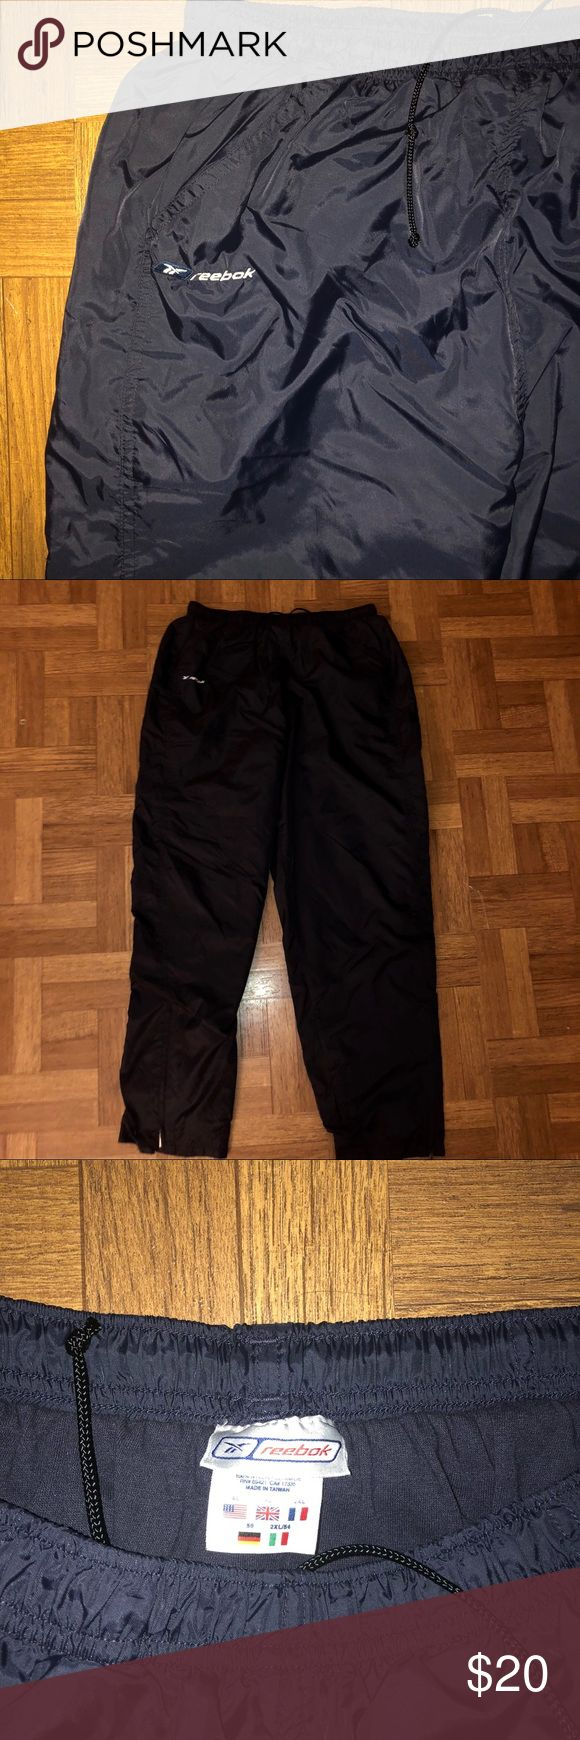 """""""Reebok"""" men's athletic pants size XL Dark Blue Athletic pants by """"Reebok"""", comfortable polyester/cotton material, """"Reebok"""" logo on upper right leg, adjustable waist and zippers at ankles for adjustable fit! In good condition! Reebok Pants Sweatpants & Joggers"""